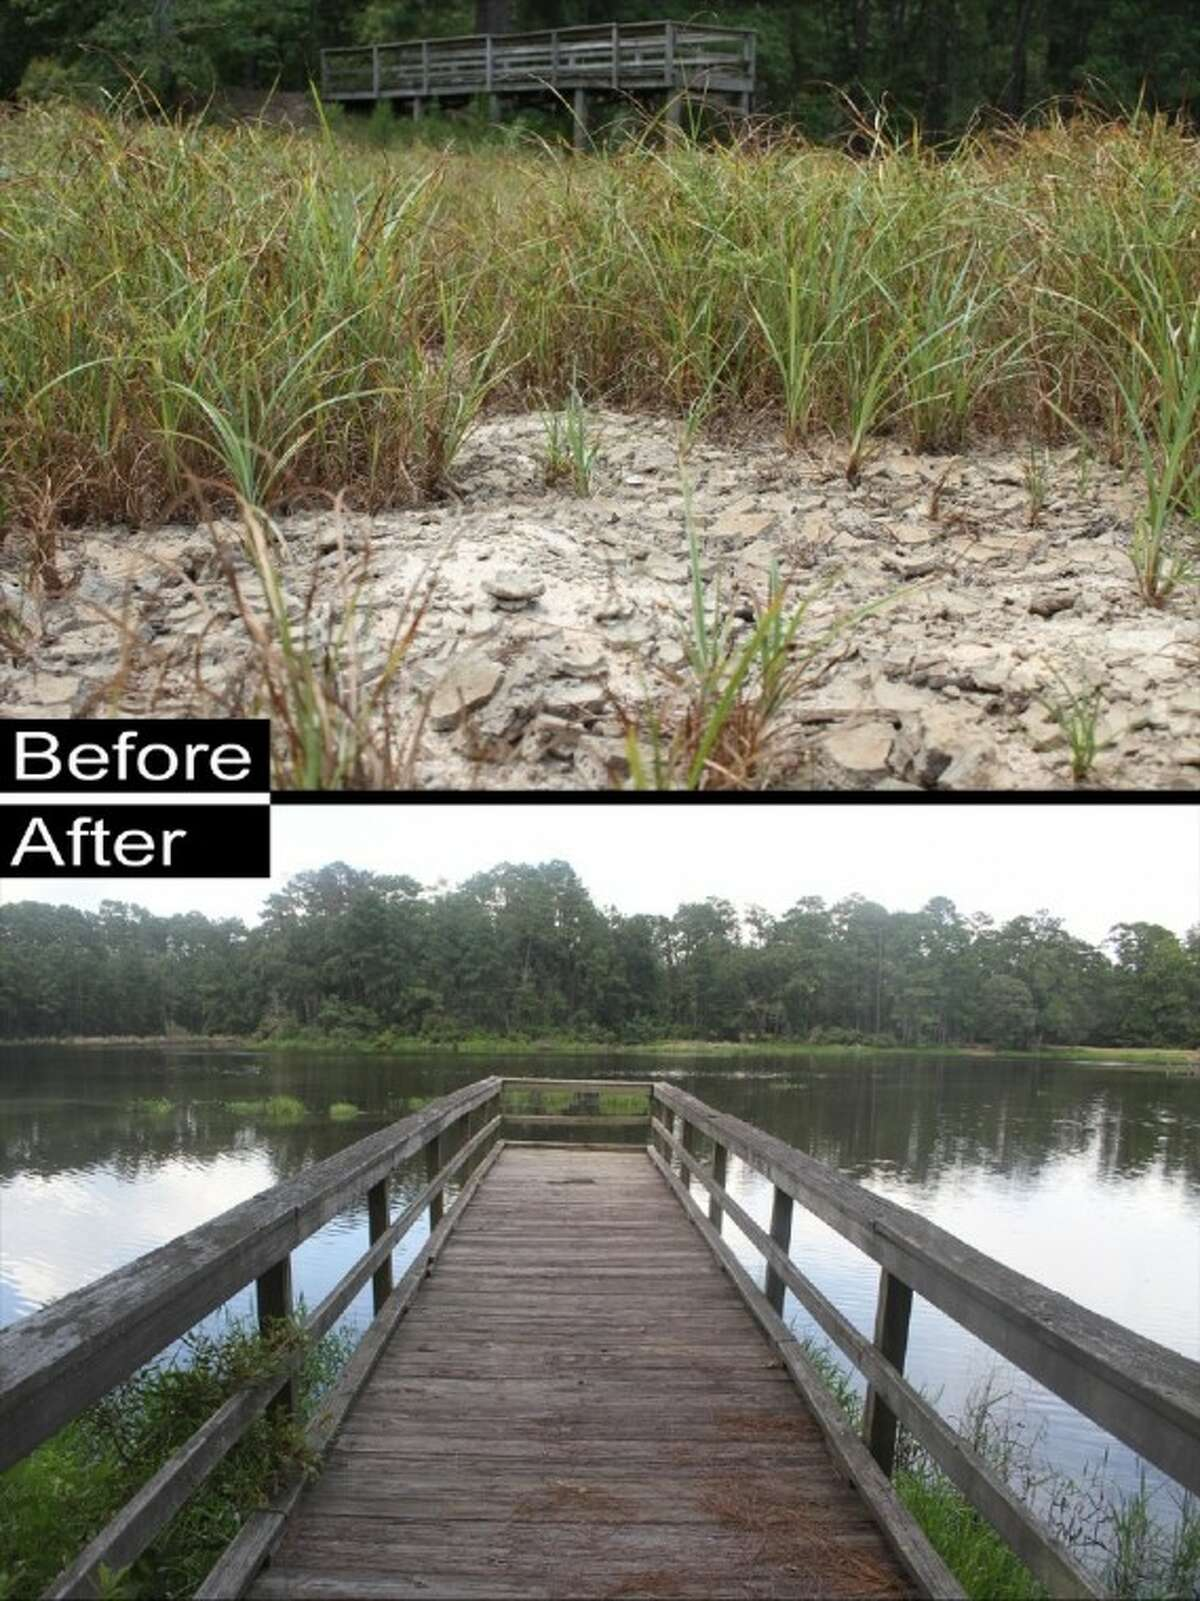 ABOVE: A fishing pier stands unused after the 2011 drought turned Double Lake near Coldspring into nothing more than a large field surrounded by campsites. BELOW: The pier as it looks today thanks to some much-needed rain.